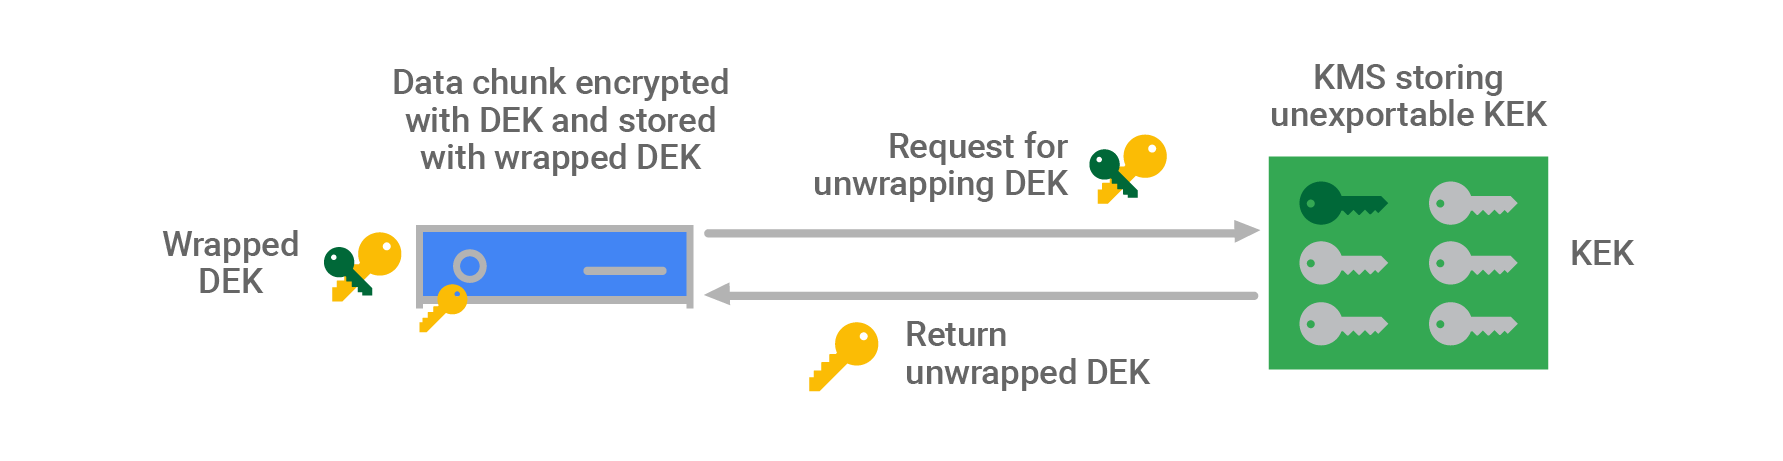 Diagram of data chunk decryption